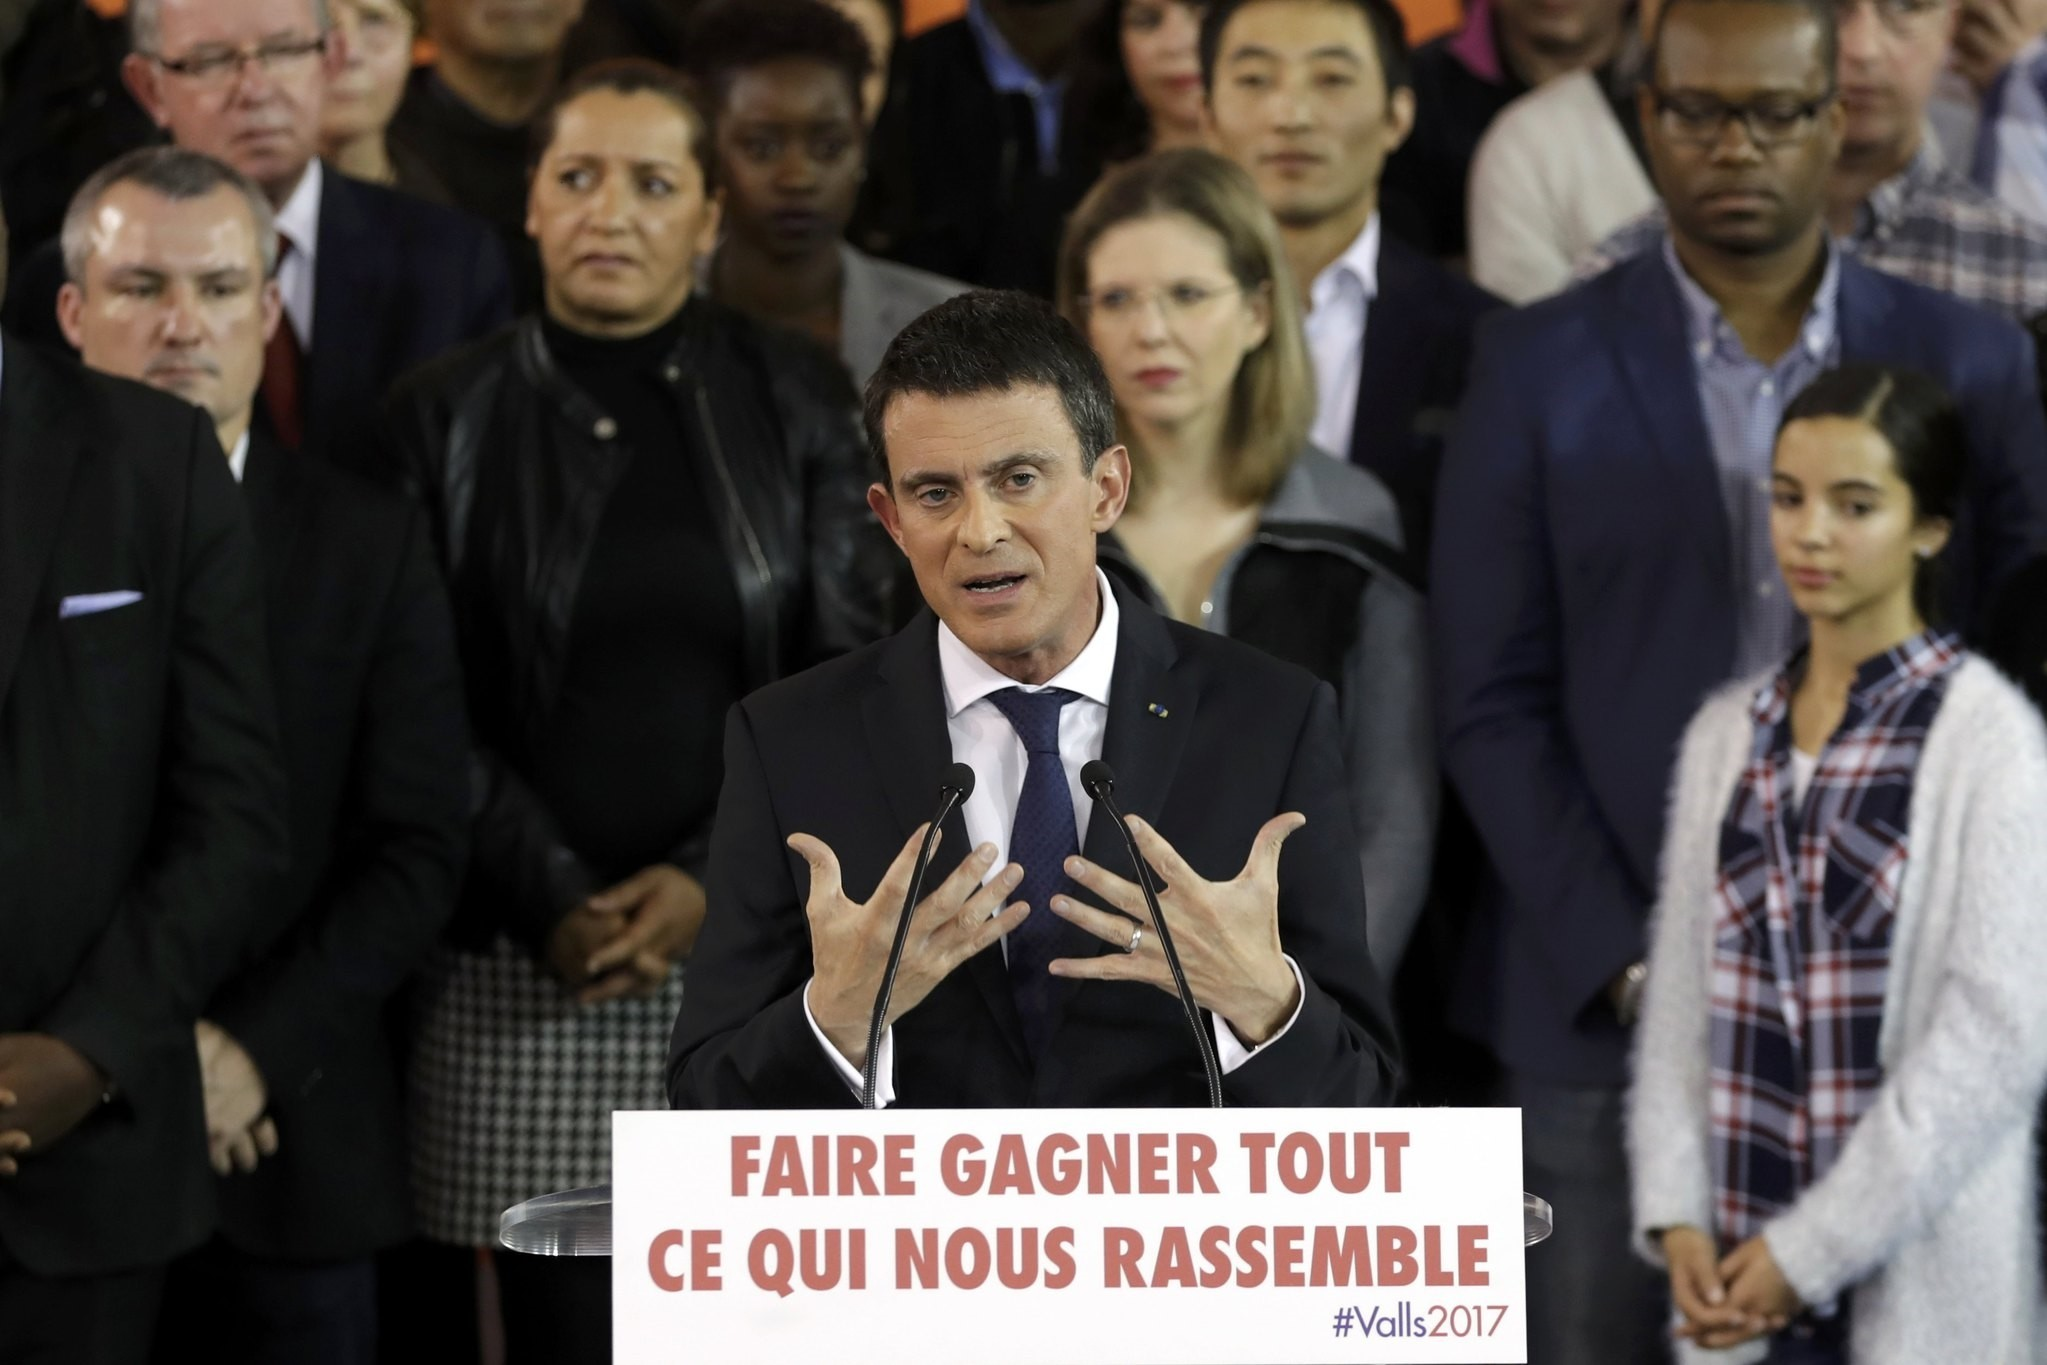 French Prime Minister Manuel Valls attends a news conference to announce that he is a candidate for January's Socialist presidential primary, December 5, 2016. (REUTERS Photo)